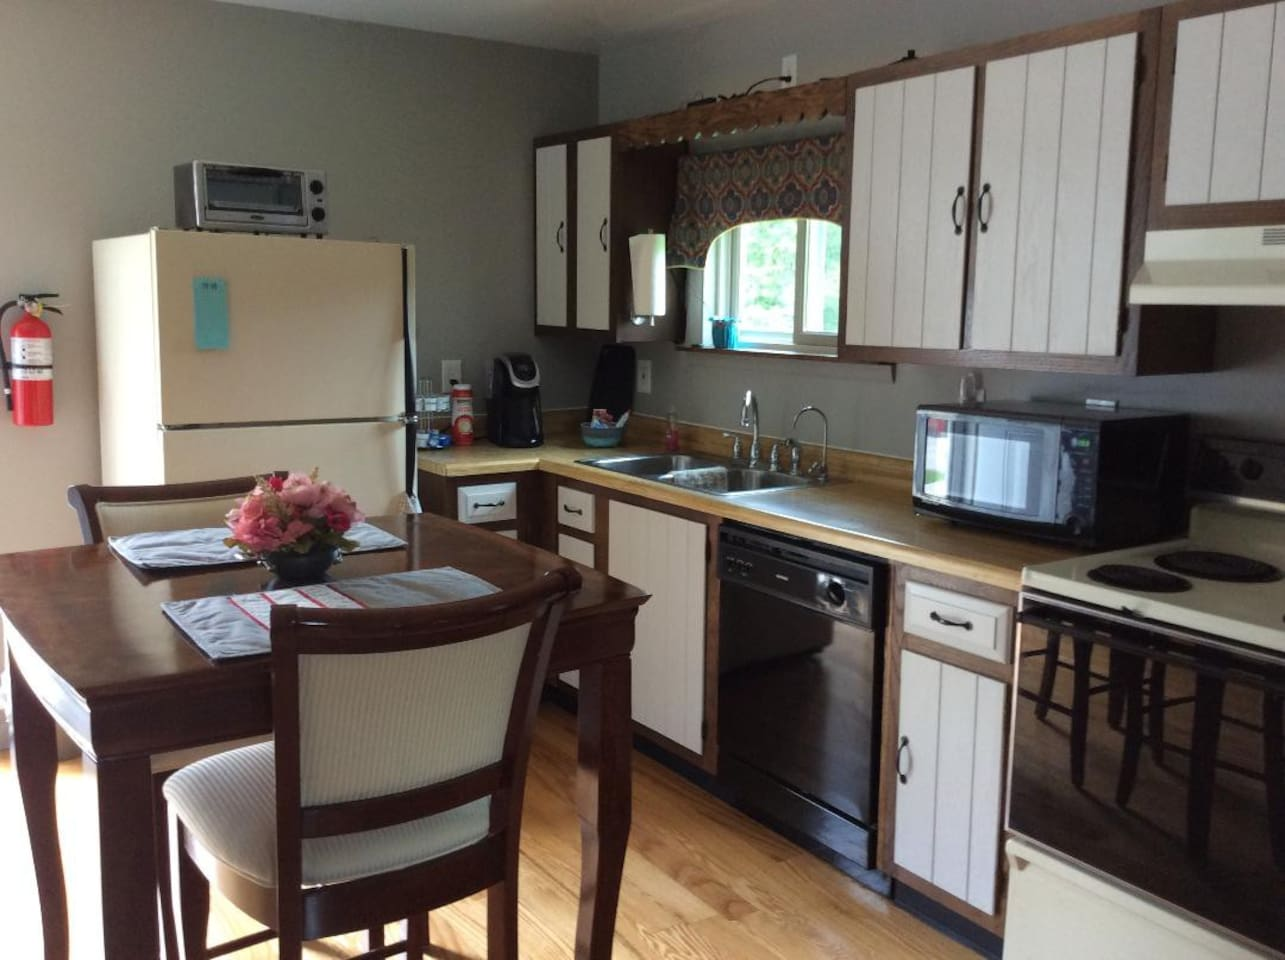 Our cozy, country space features full-sized fridge, stove, and dishwasher and also includes a microwave and toaster oven. The eat-in kitchen is equipped with a table and padded chairs.